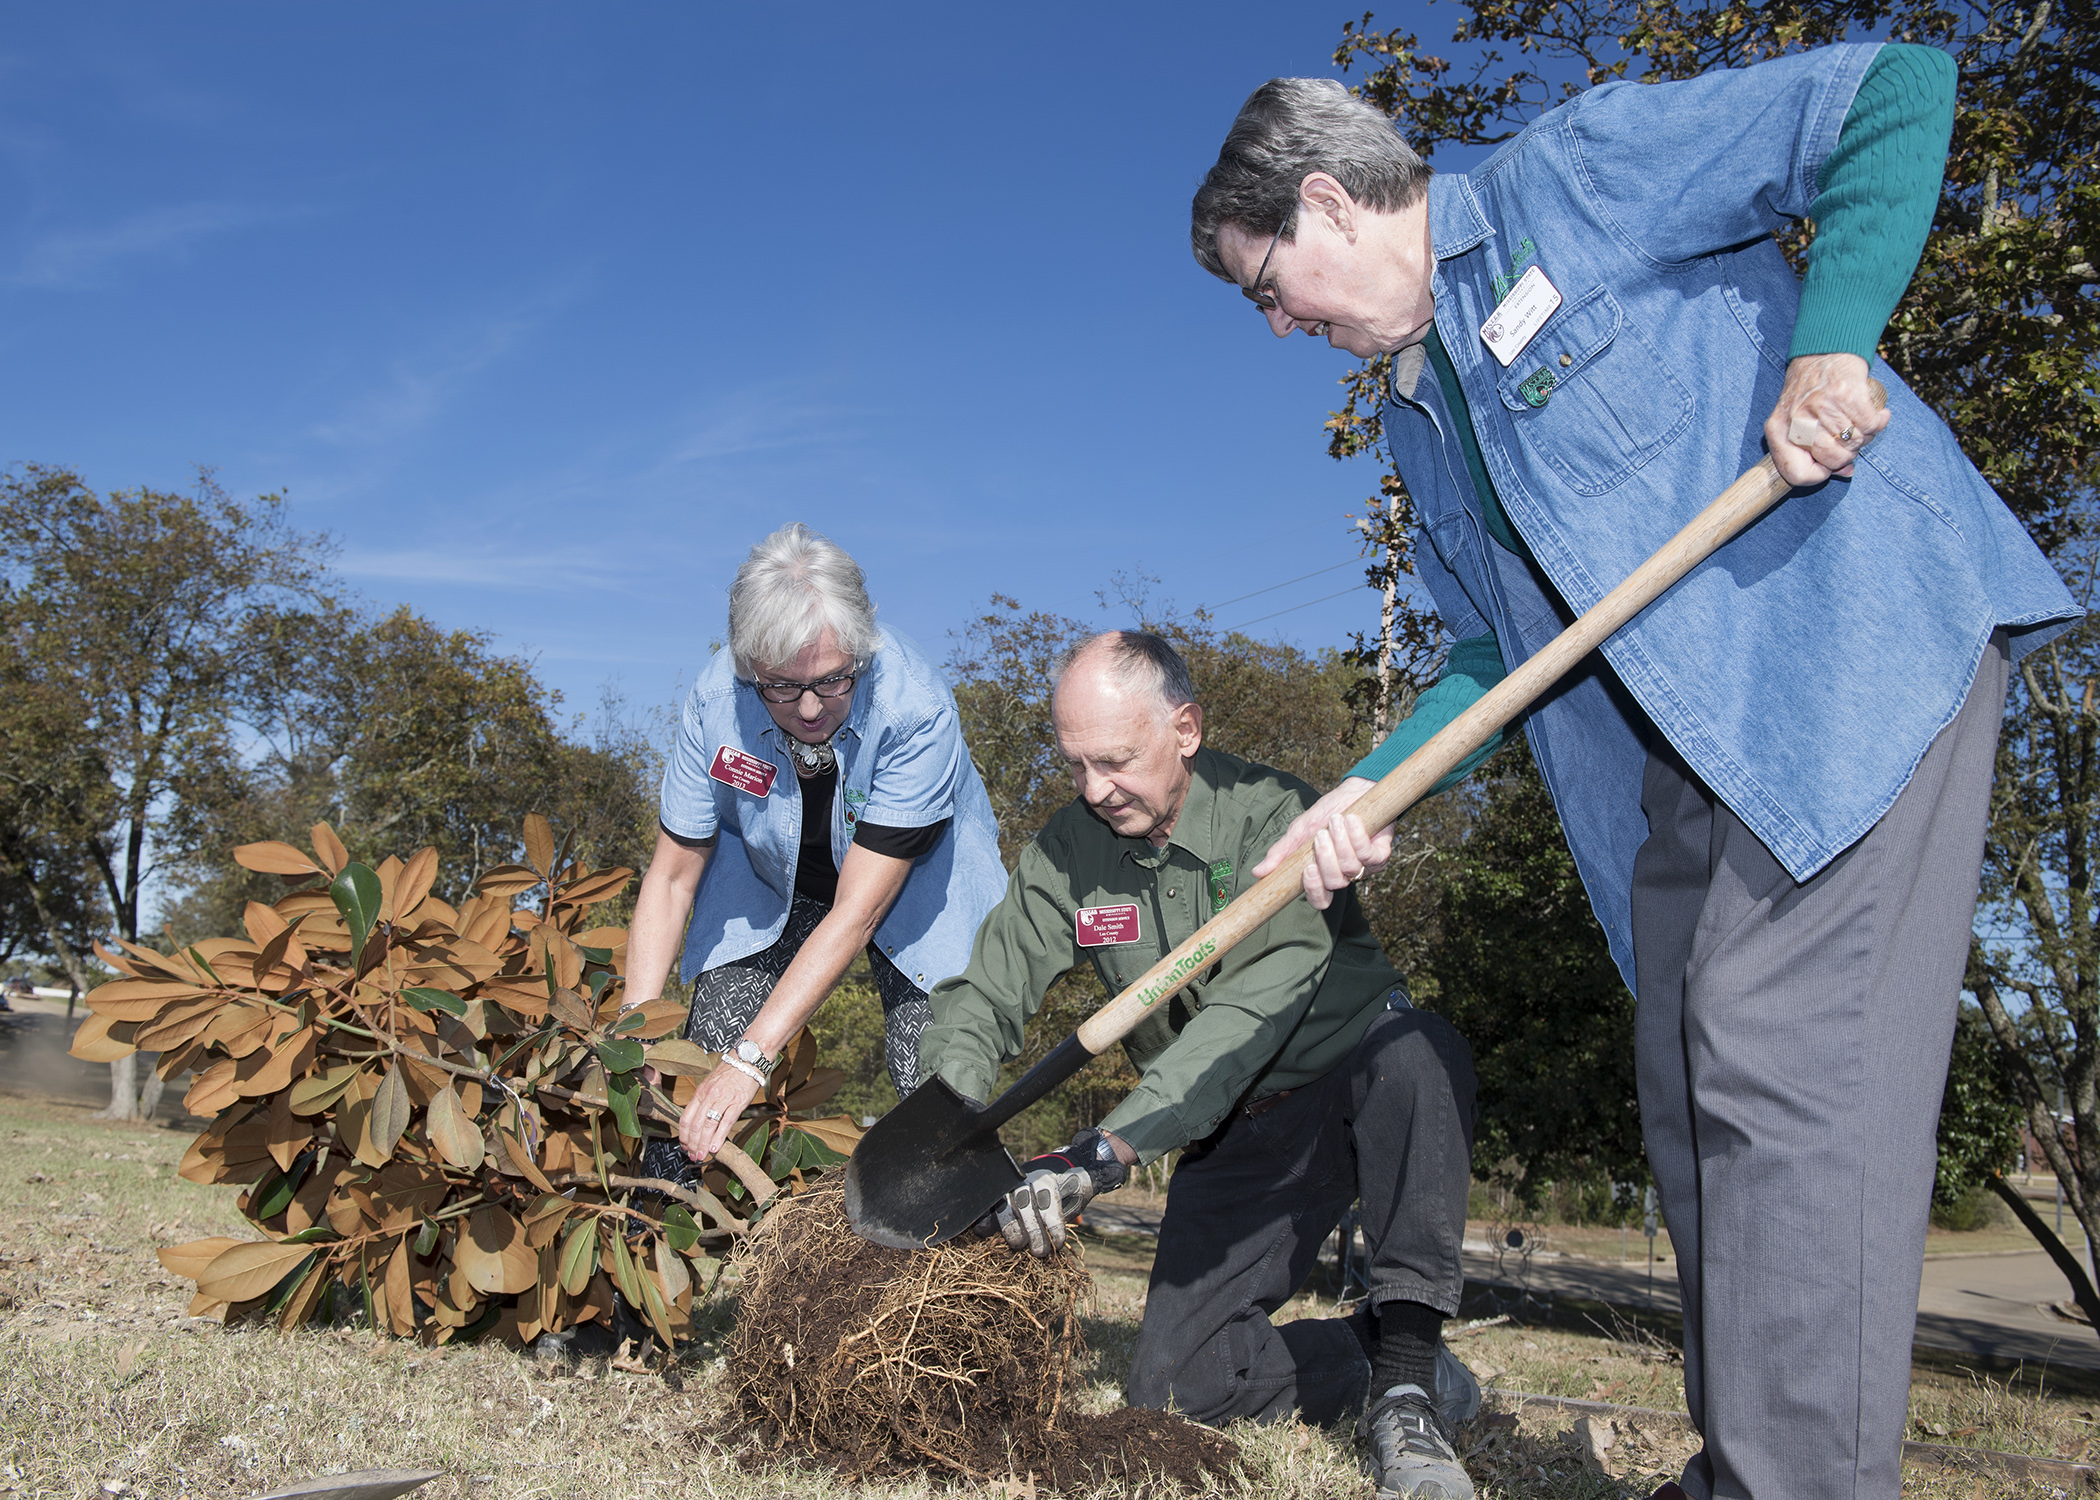 Three members of the Mississippi Master Gardners program pick up leaves and rake straw.